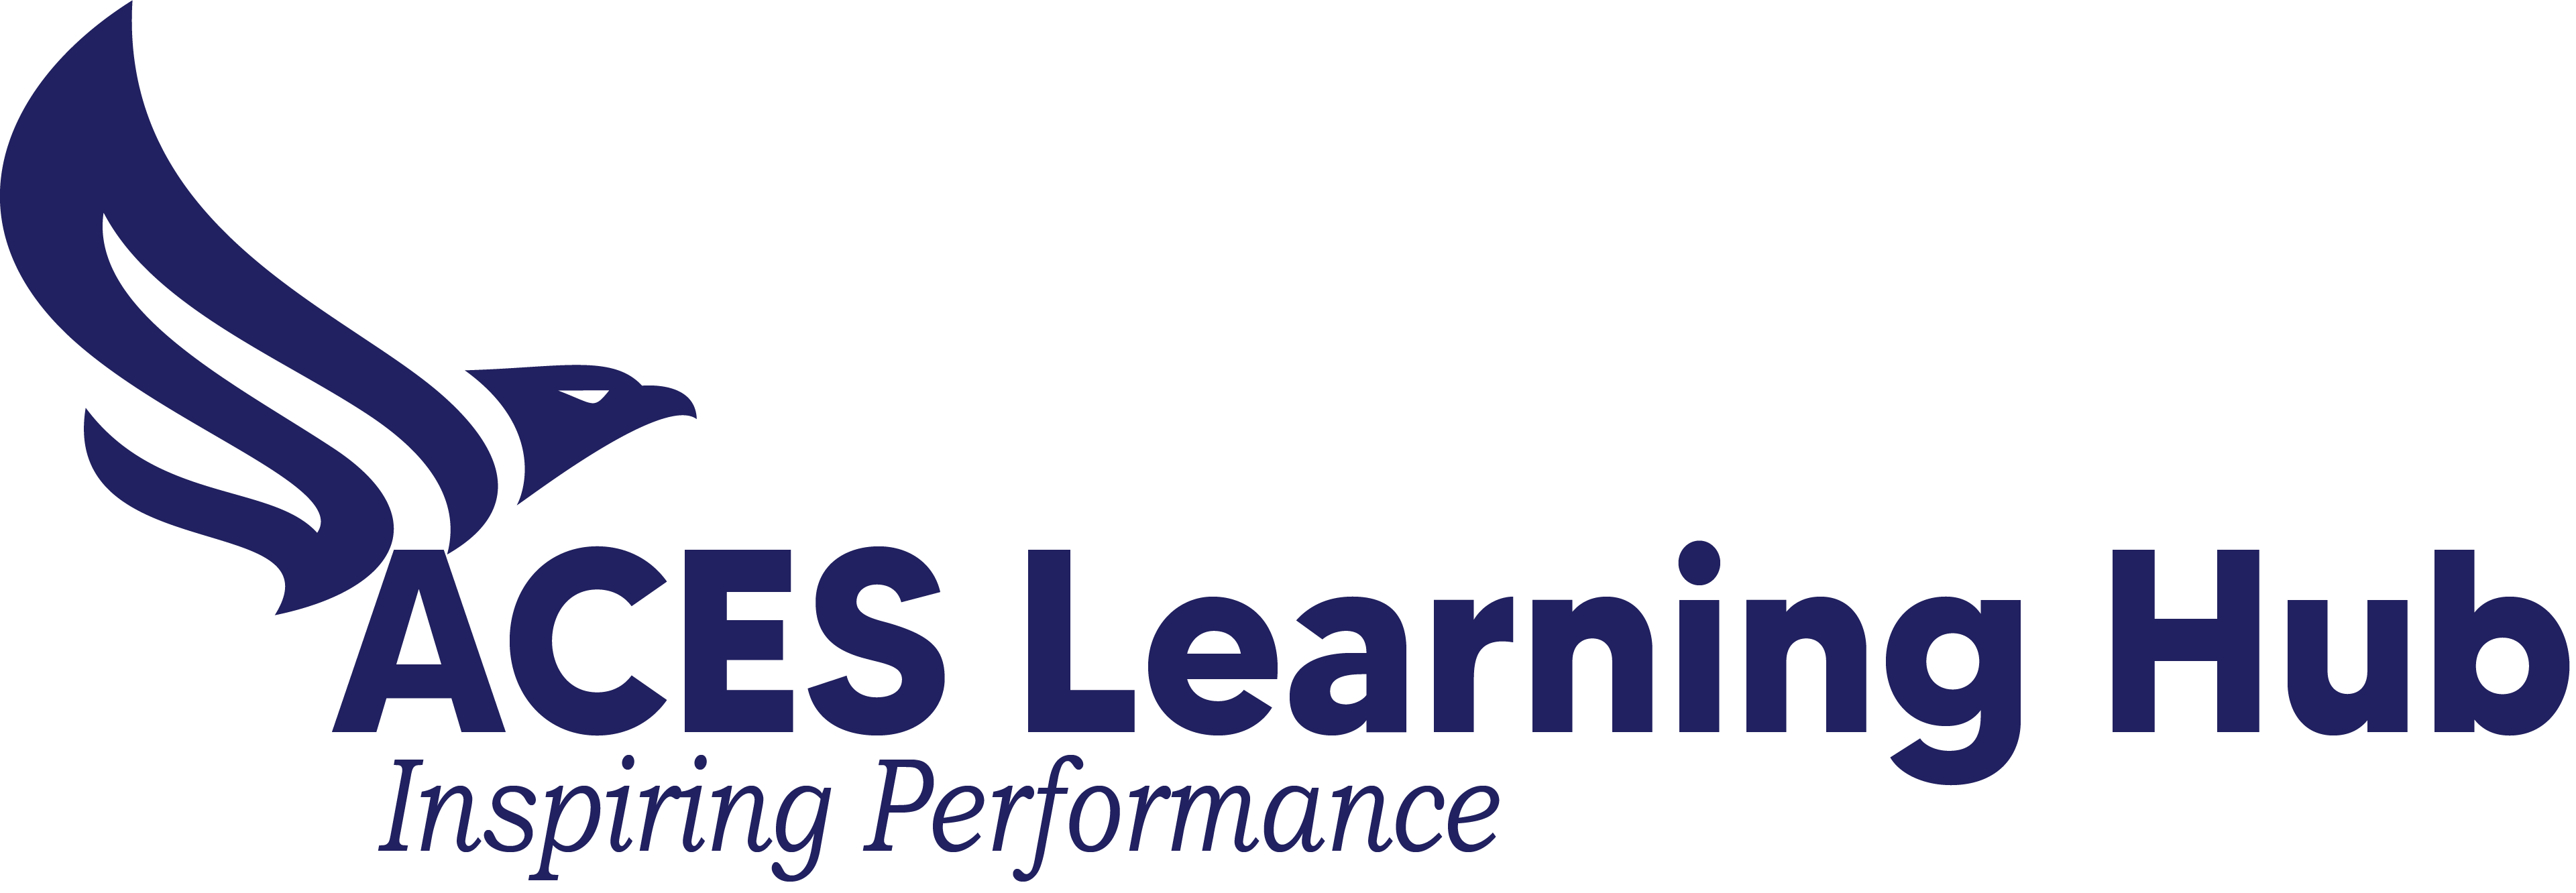 Aces Learning Hub